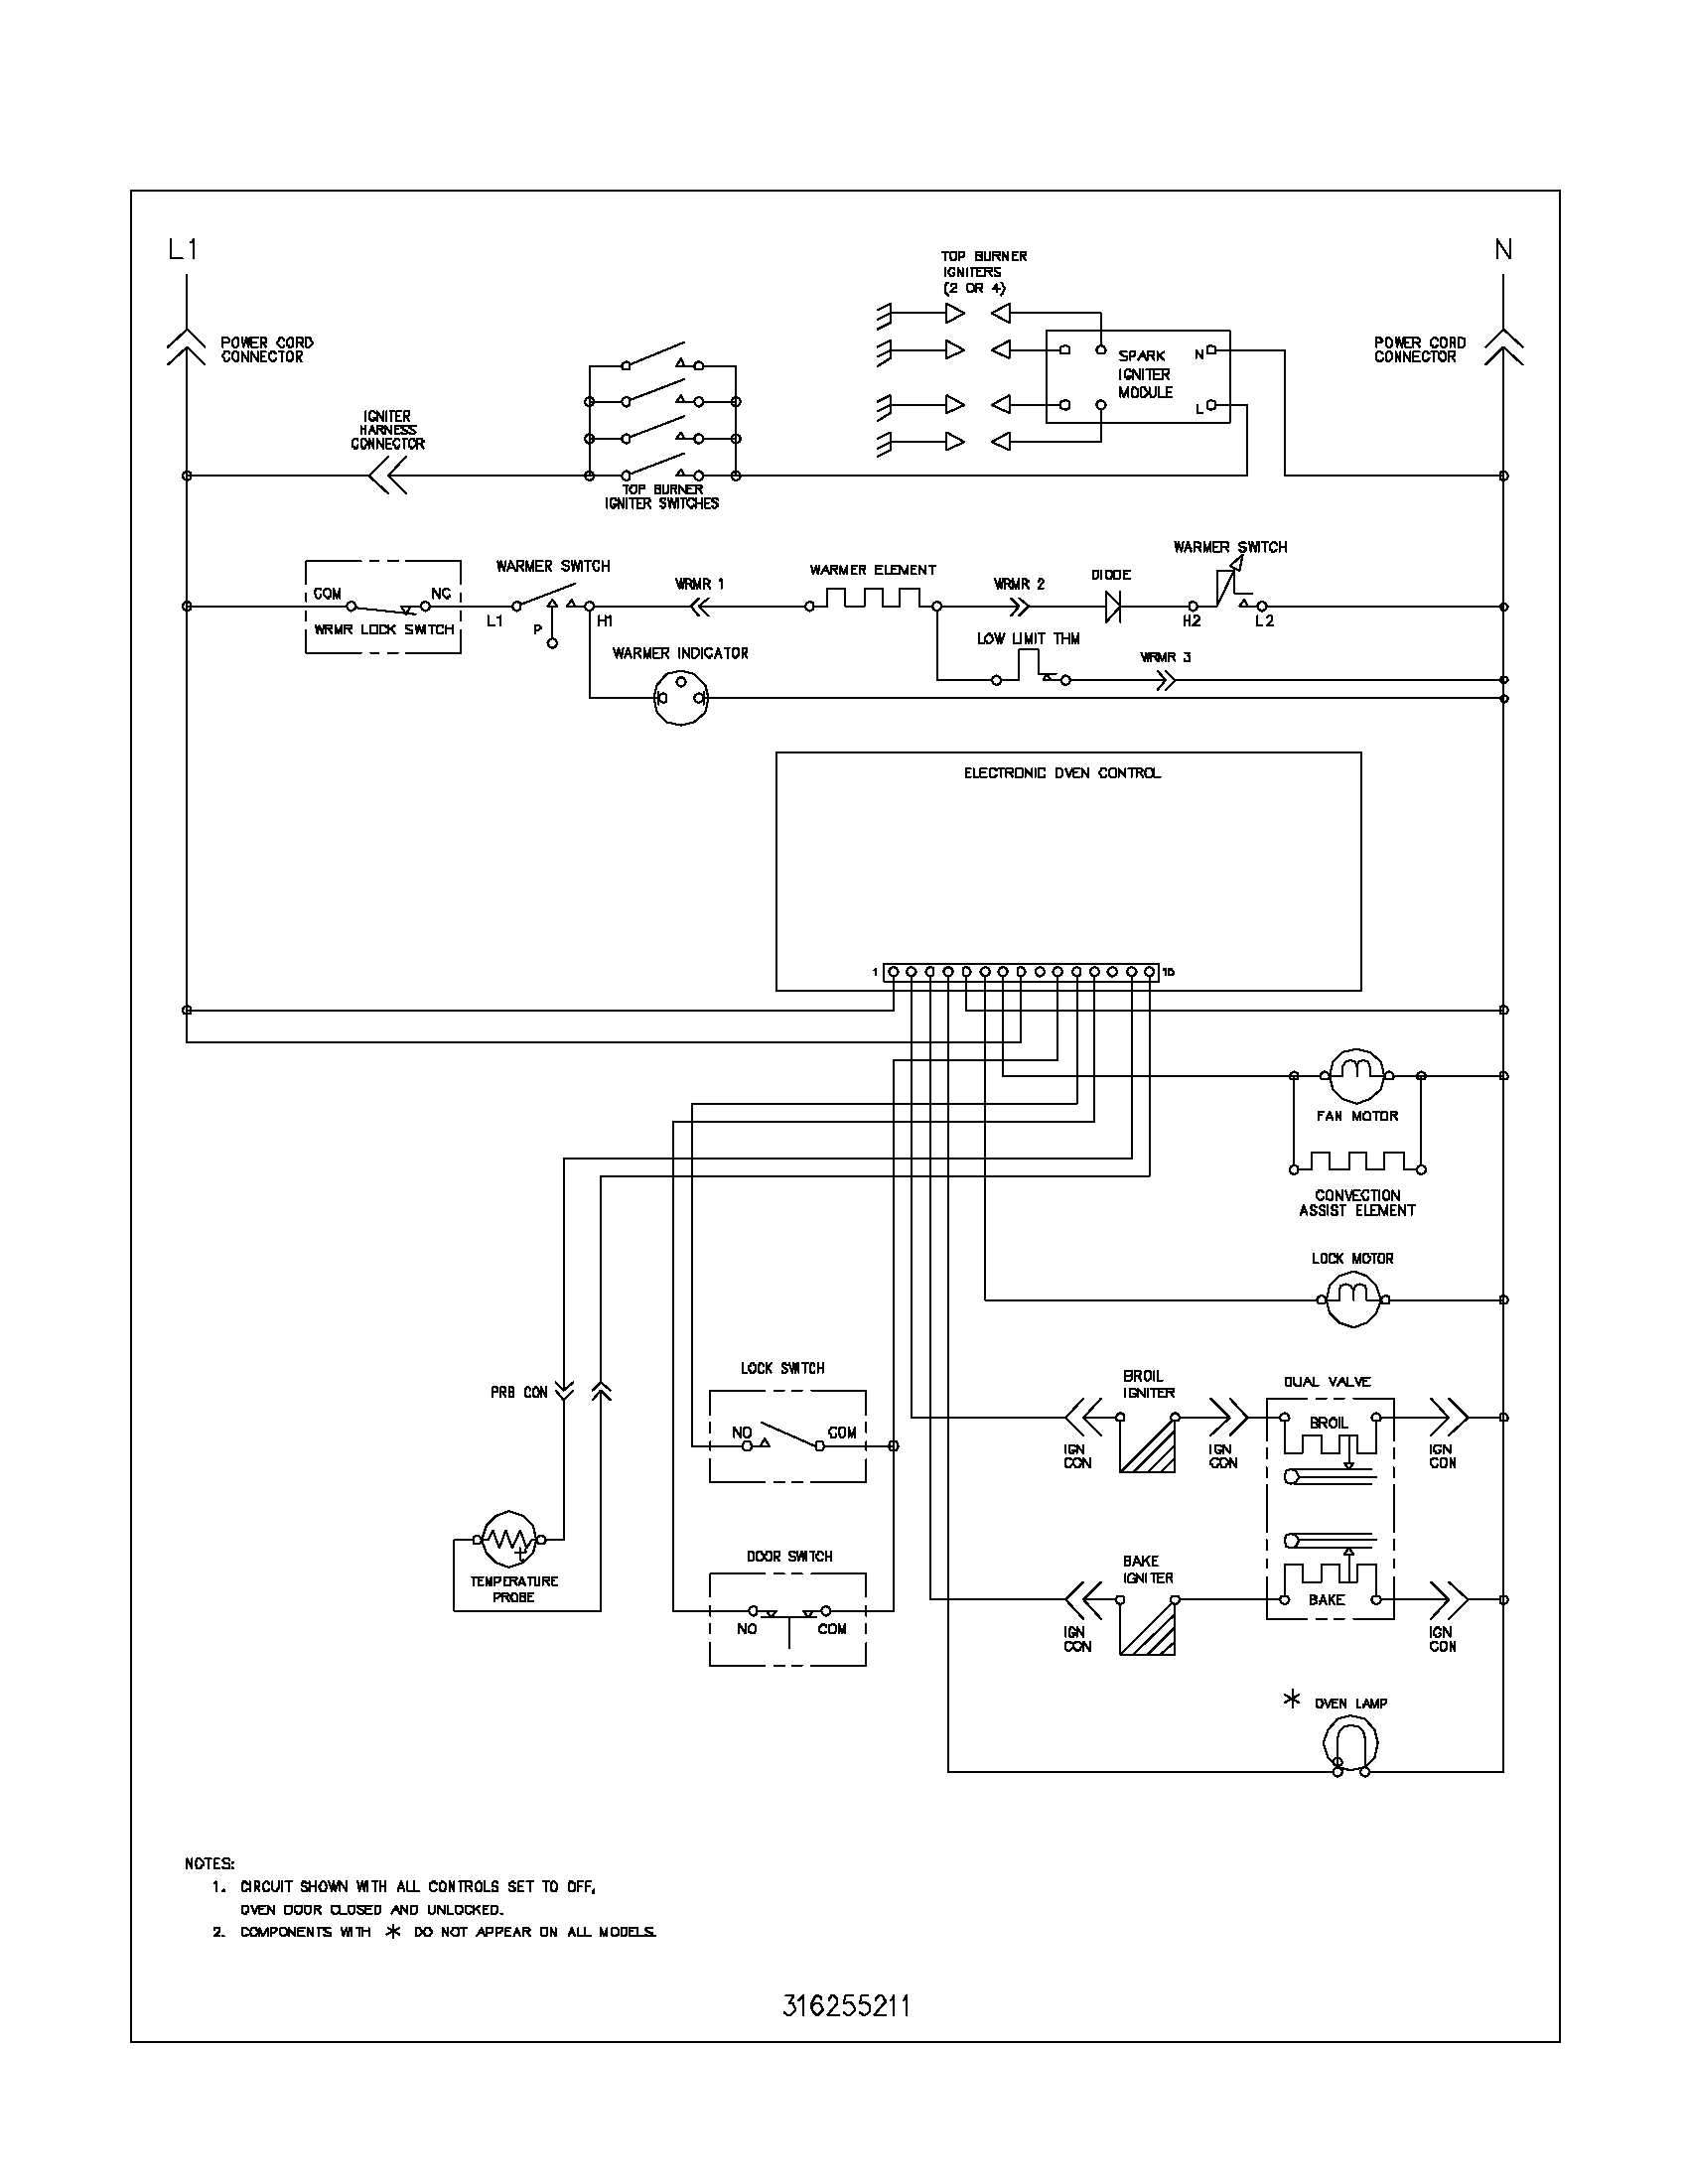 wiring diagram for frigidaire range the wiring diagram frigidaire range wiring diagram vidim wiring diagram wiring diagram